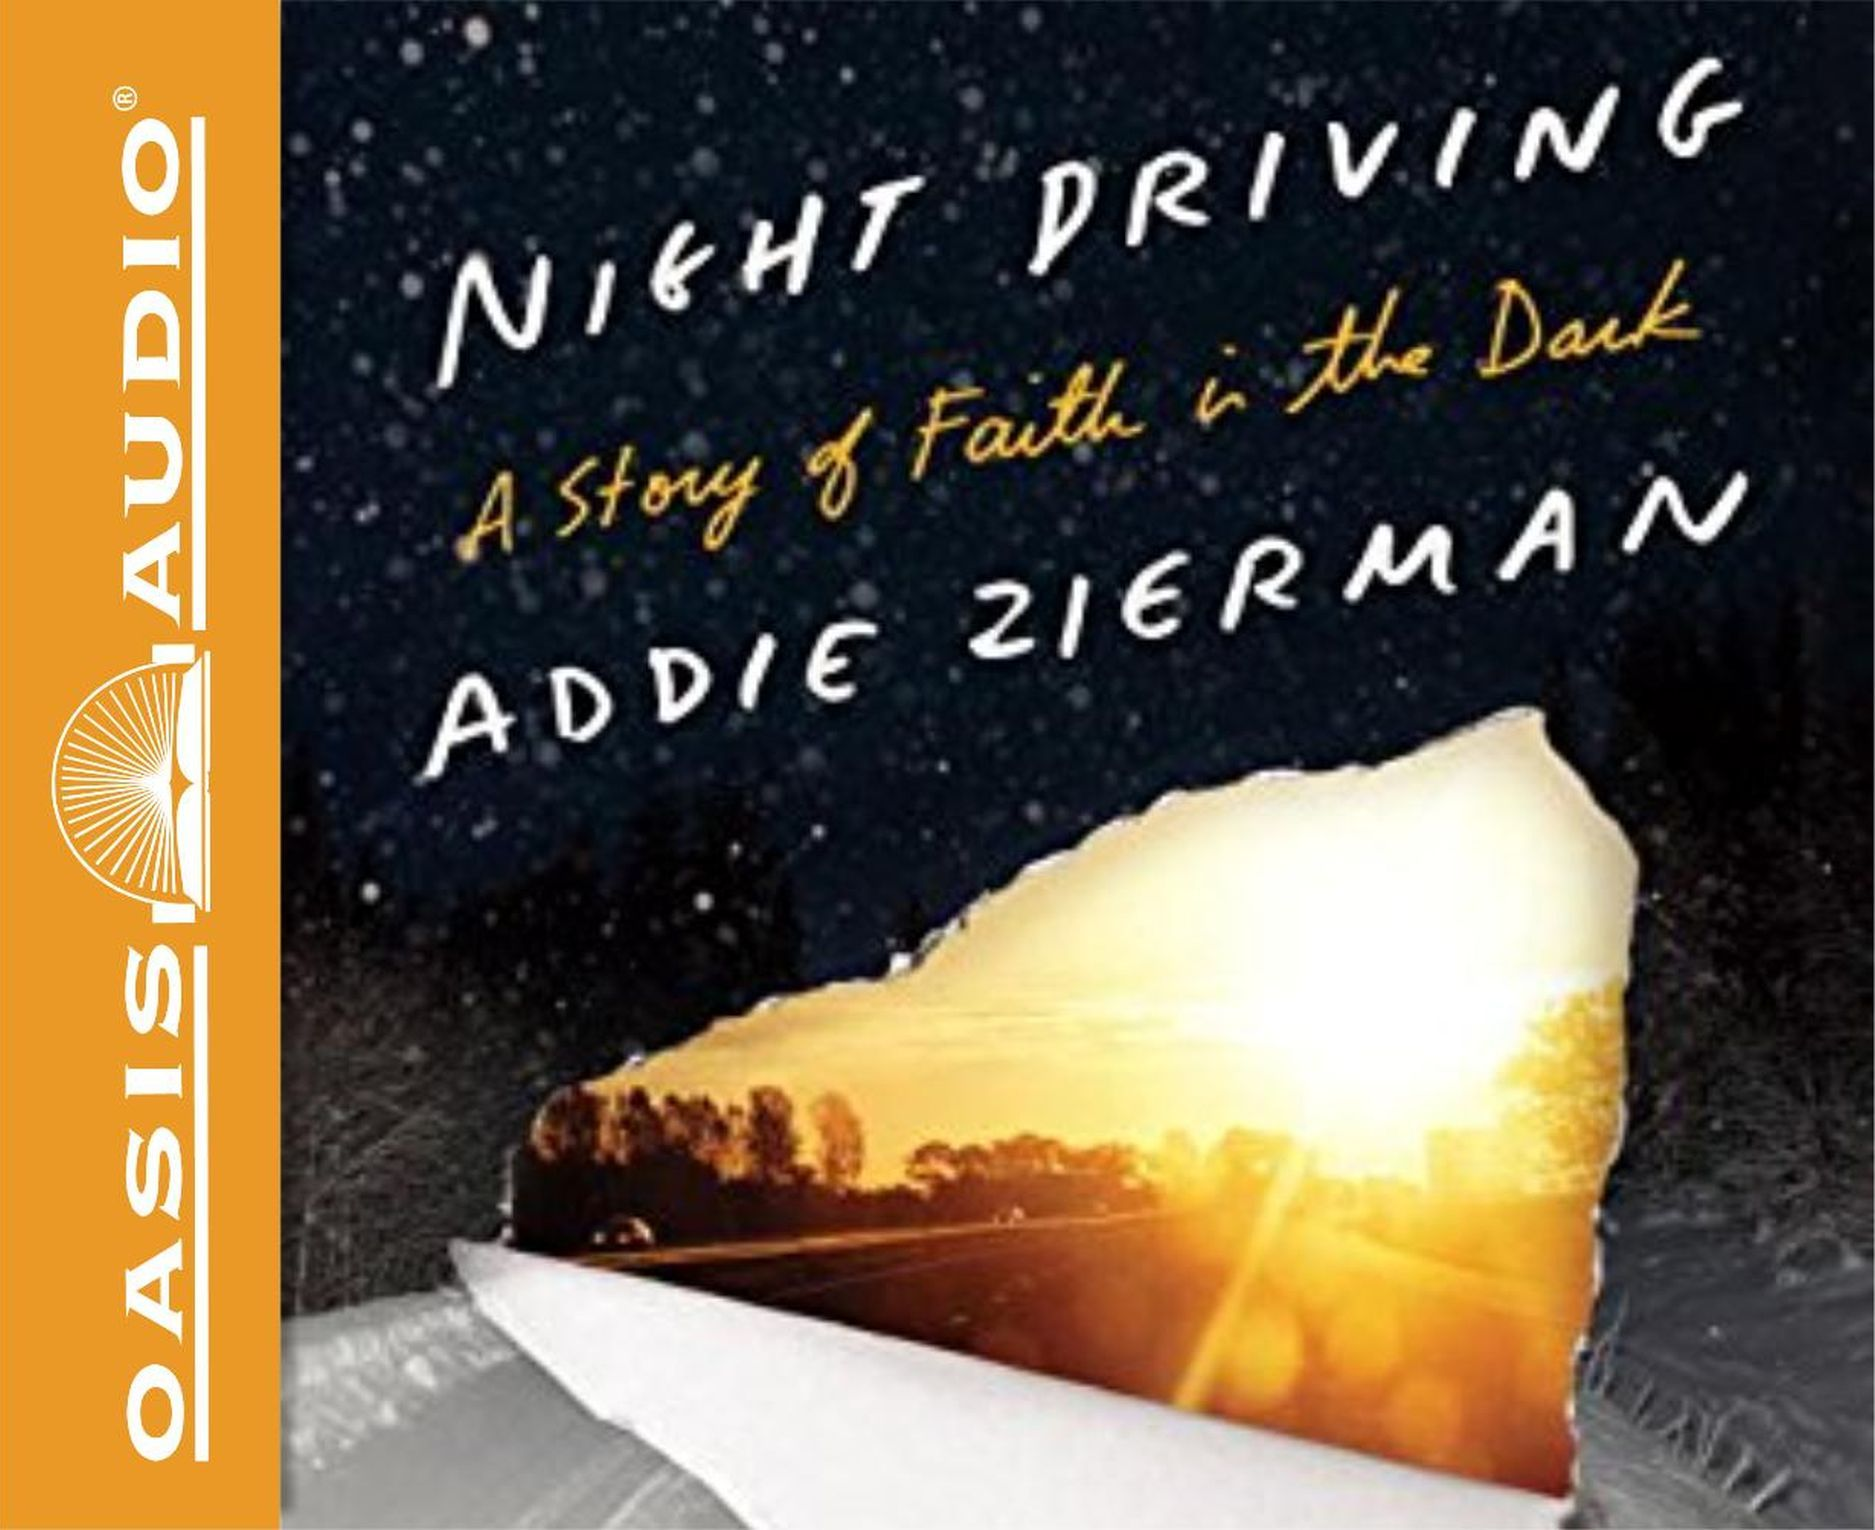 Night Driving (Library Edition): A Story of Faith in the Dark  by  Addie Zierman